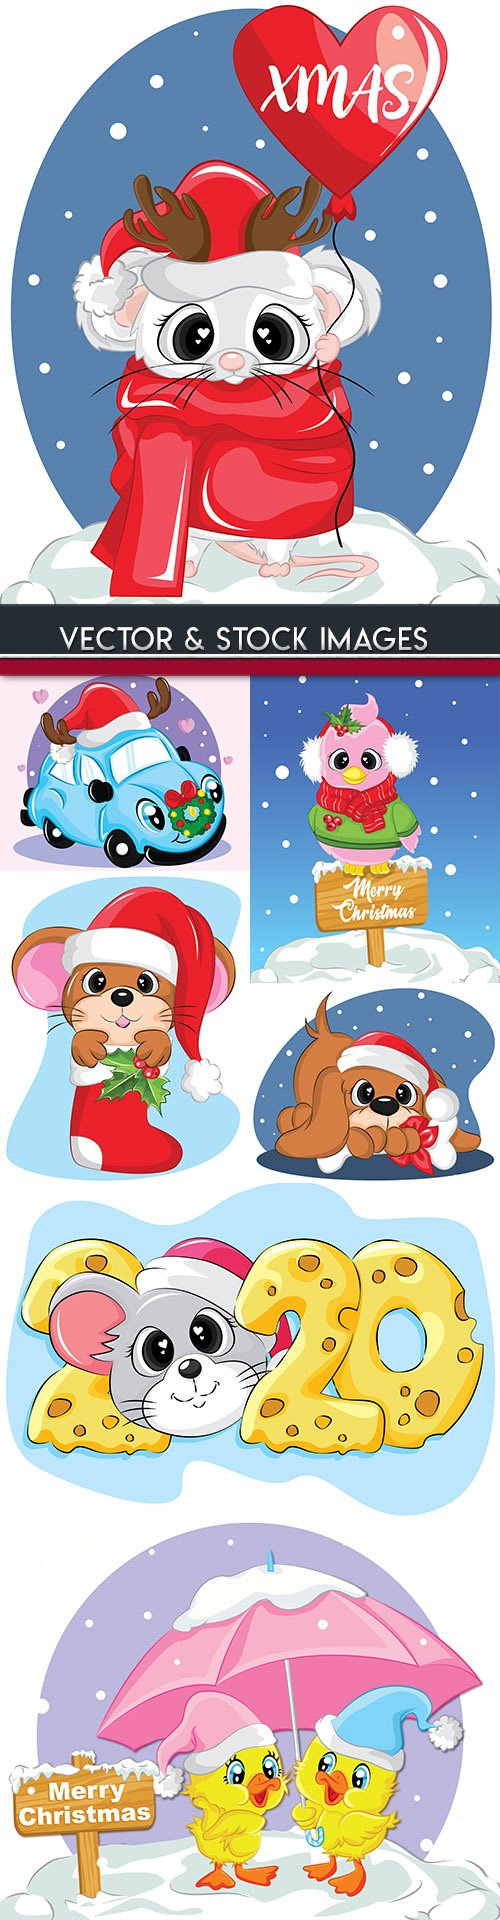 Pretty mouse in Santya scarf cap illustrations